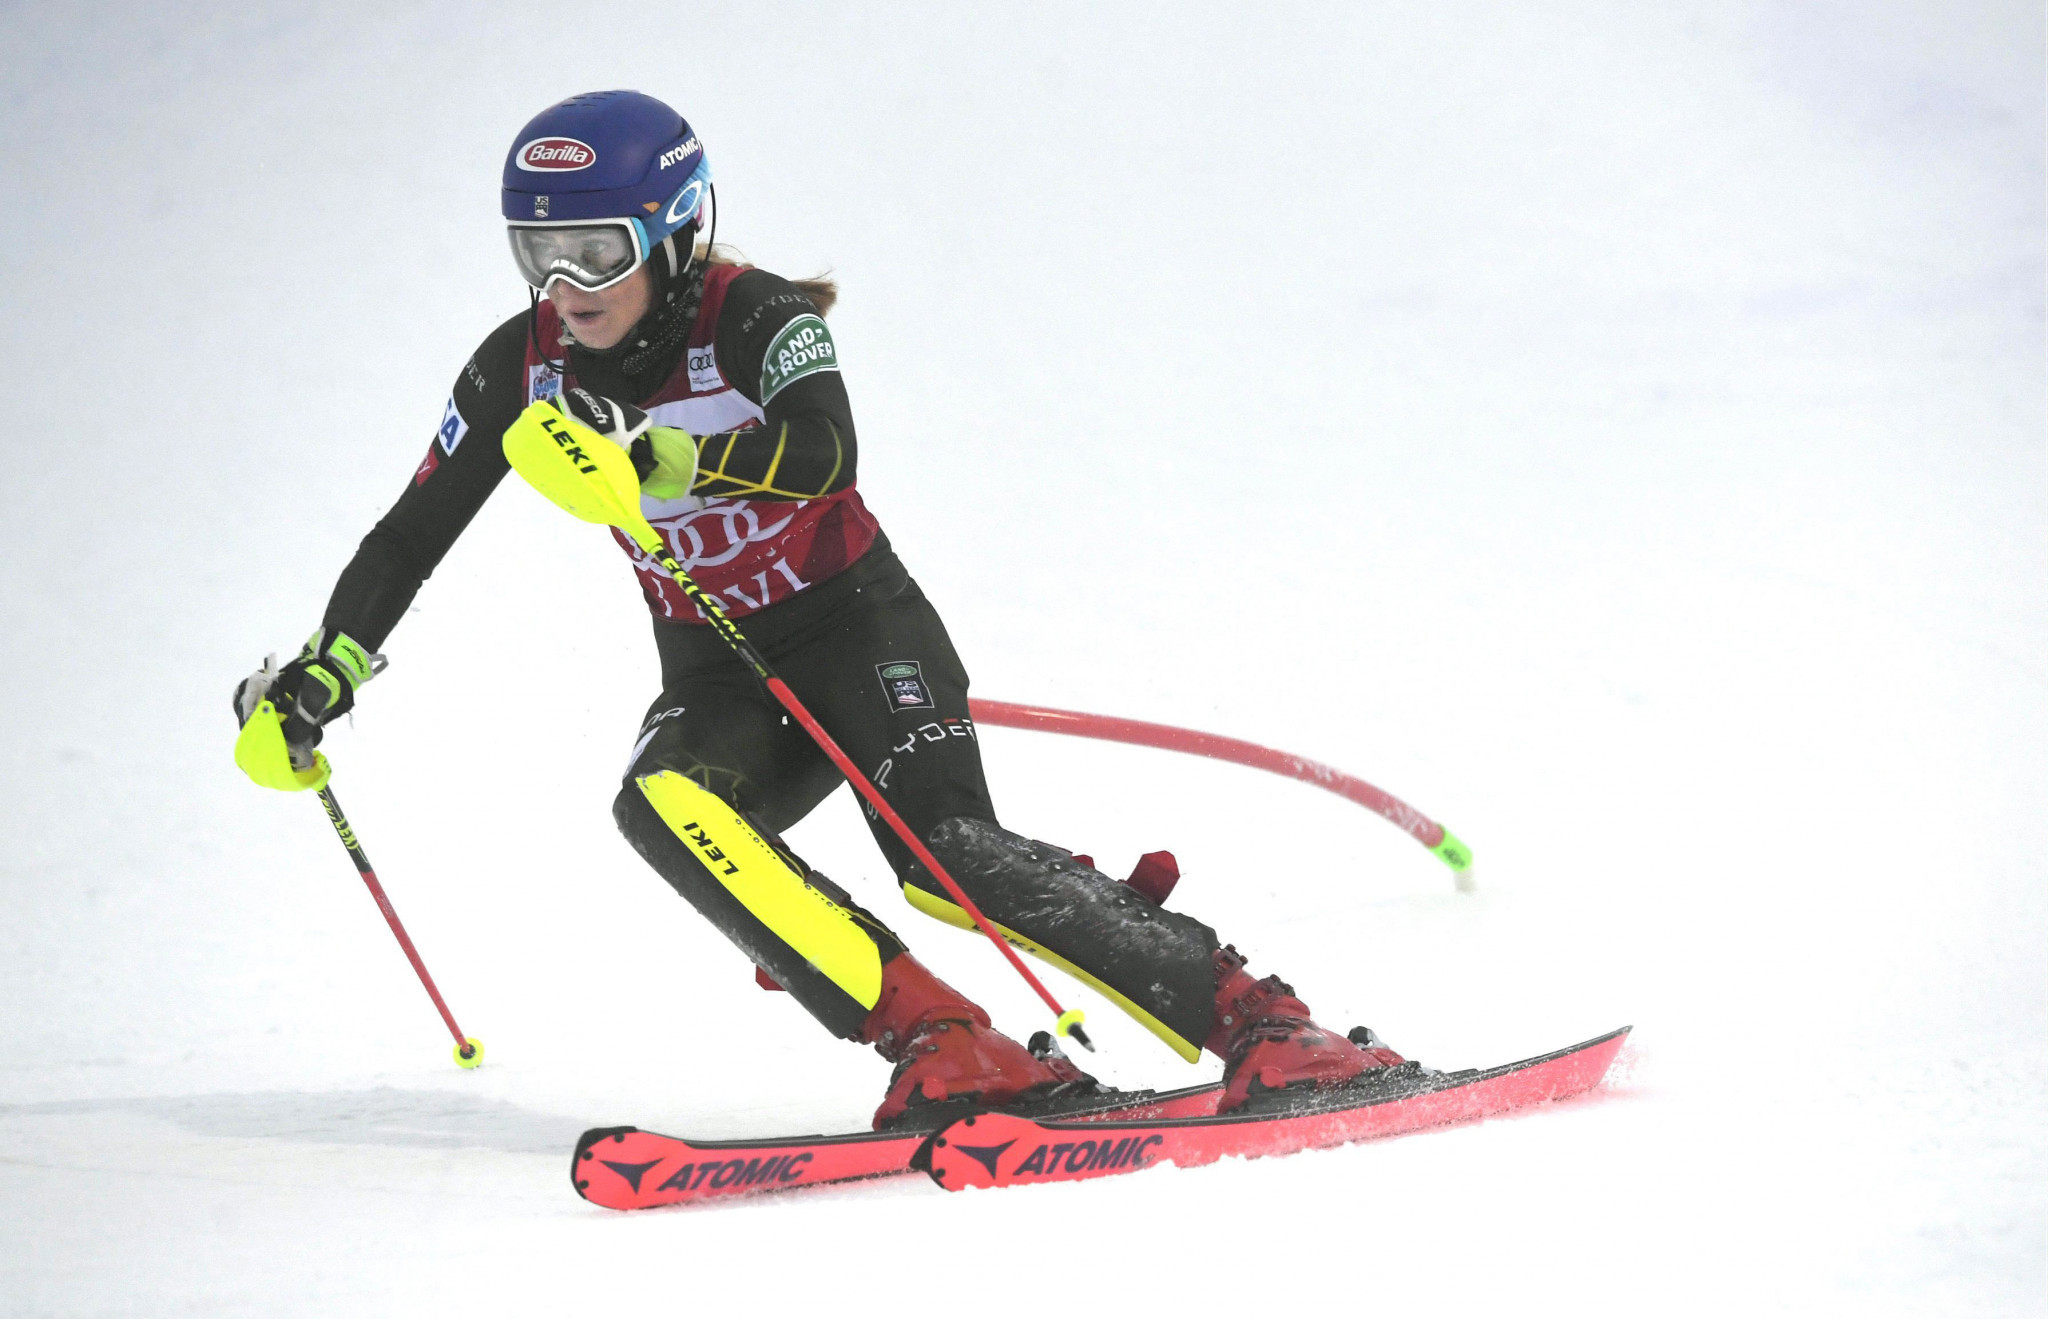 Shiffrin breaks record for slalom victories at FIS Alpine Skiing World Cup